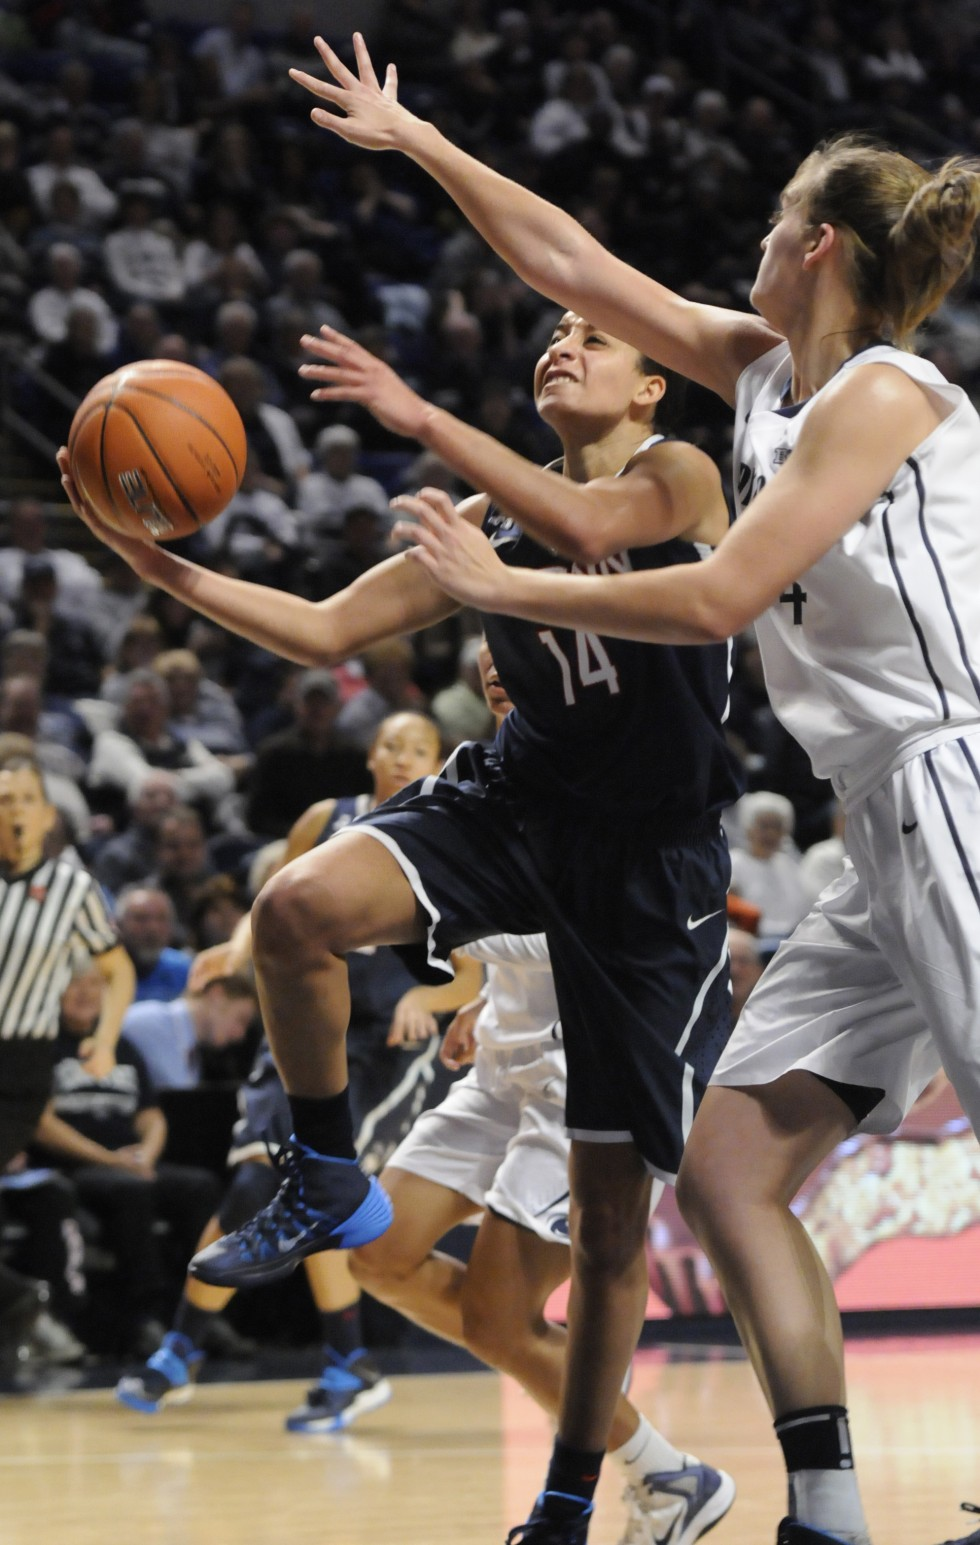 Bria Hartley dries to the basket over Penn State University junior forward/center, Tori Waldner. Hartley led the game in scoring with 29 points.